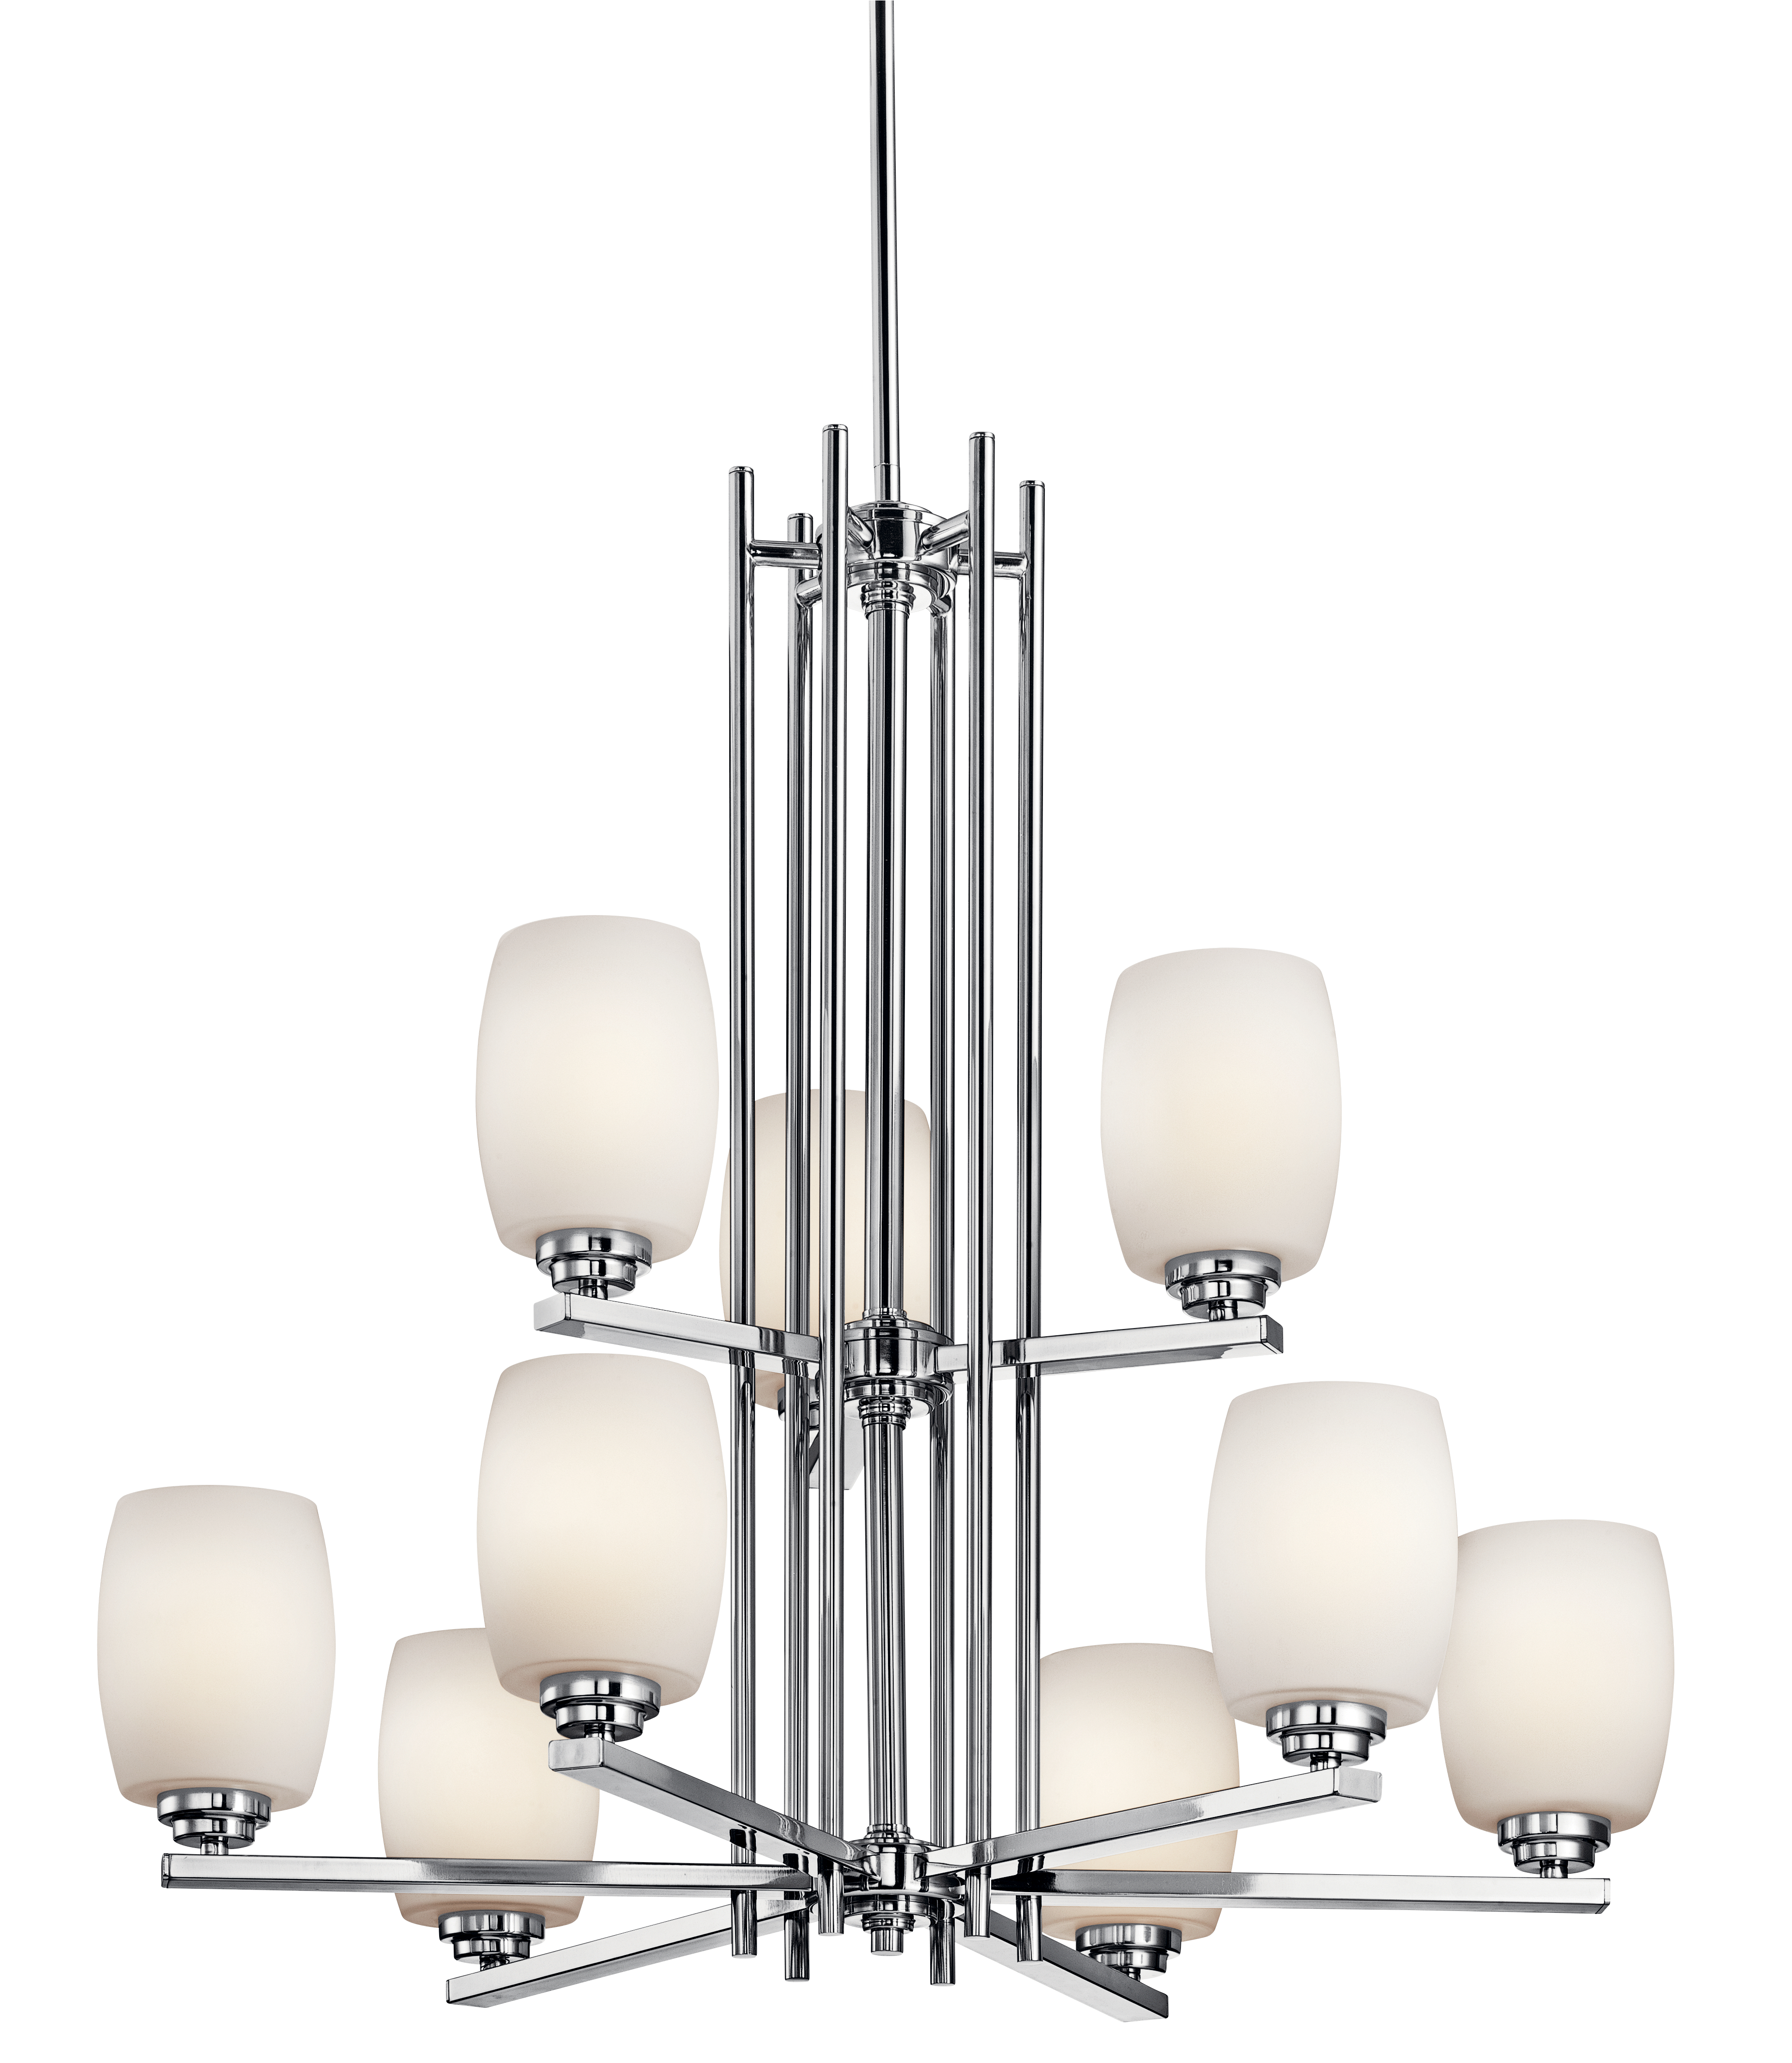 Kichler Eileen LED Chandelier with Satin Etched Cased Opal Shade - Chrome (1897CHL16)